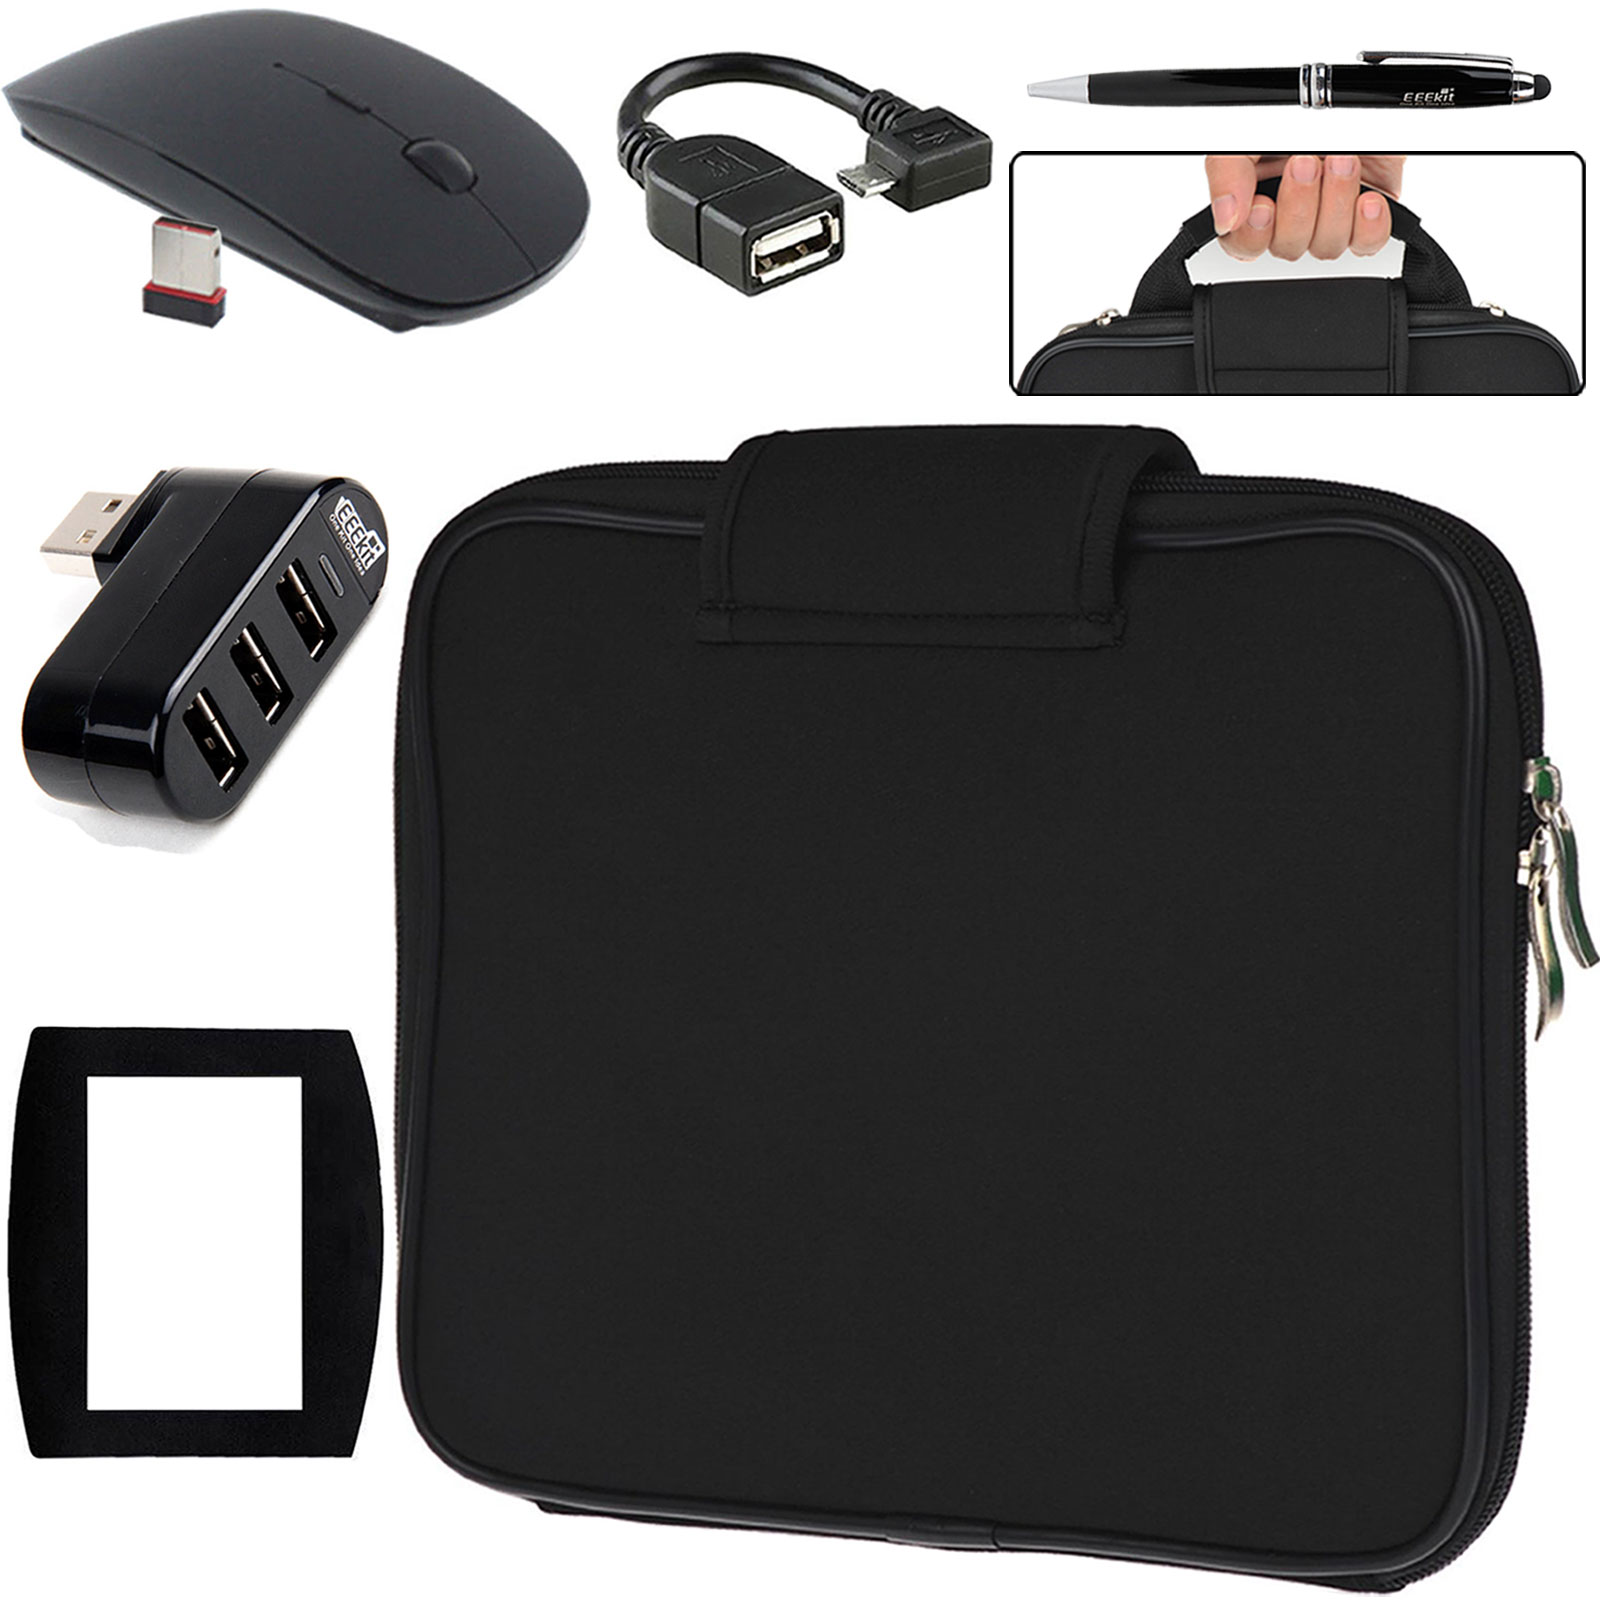 EEEKit 5in1 Kit for Nextbook Flexx 11.6,Carrying Sleeve Case Bag+3 Port USB HUB+Micro USB OTG Cable+Wireless Mouse+Stylu